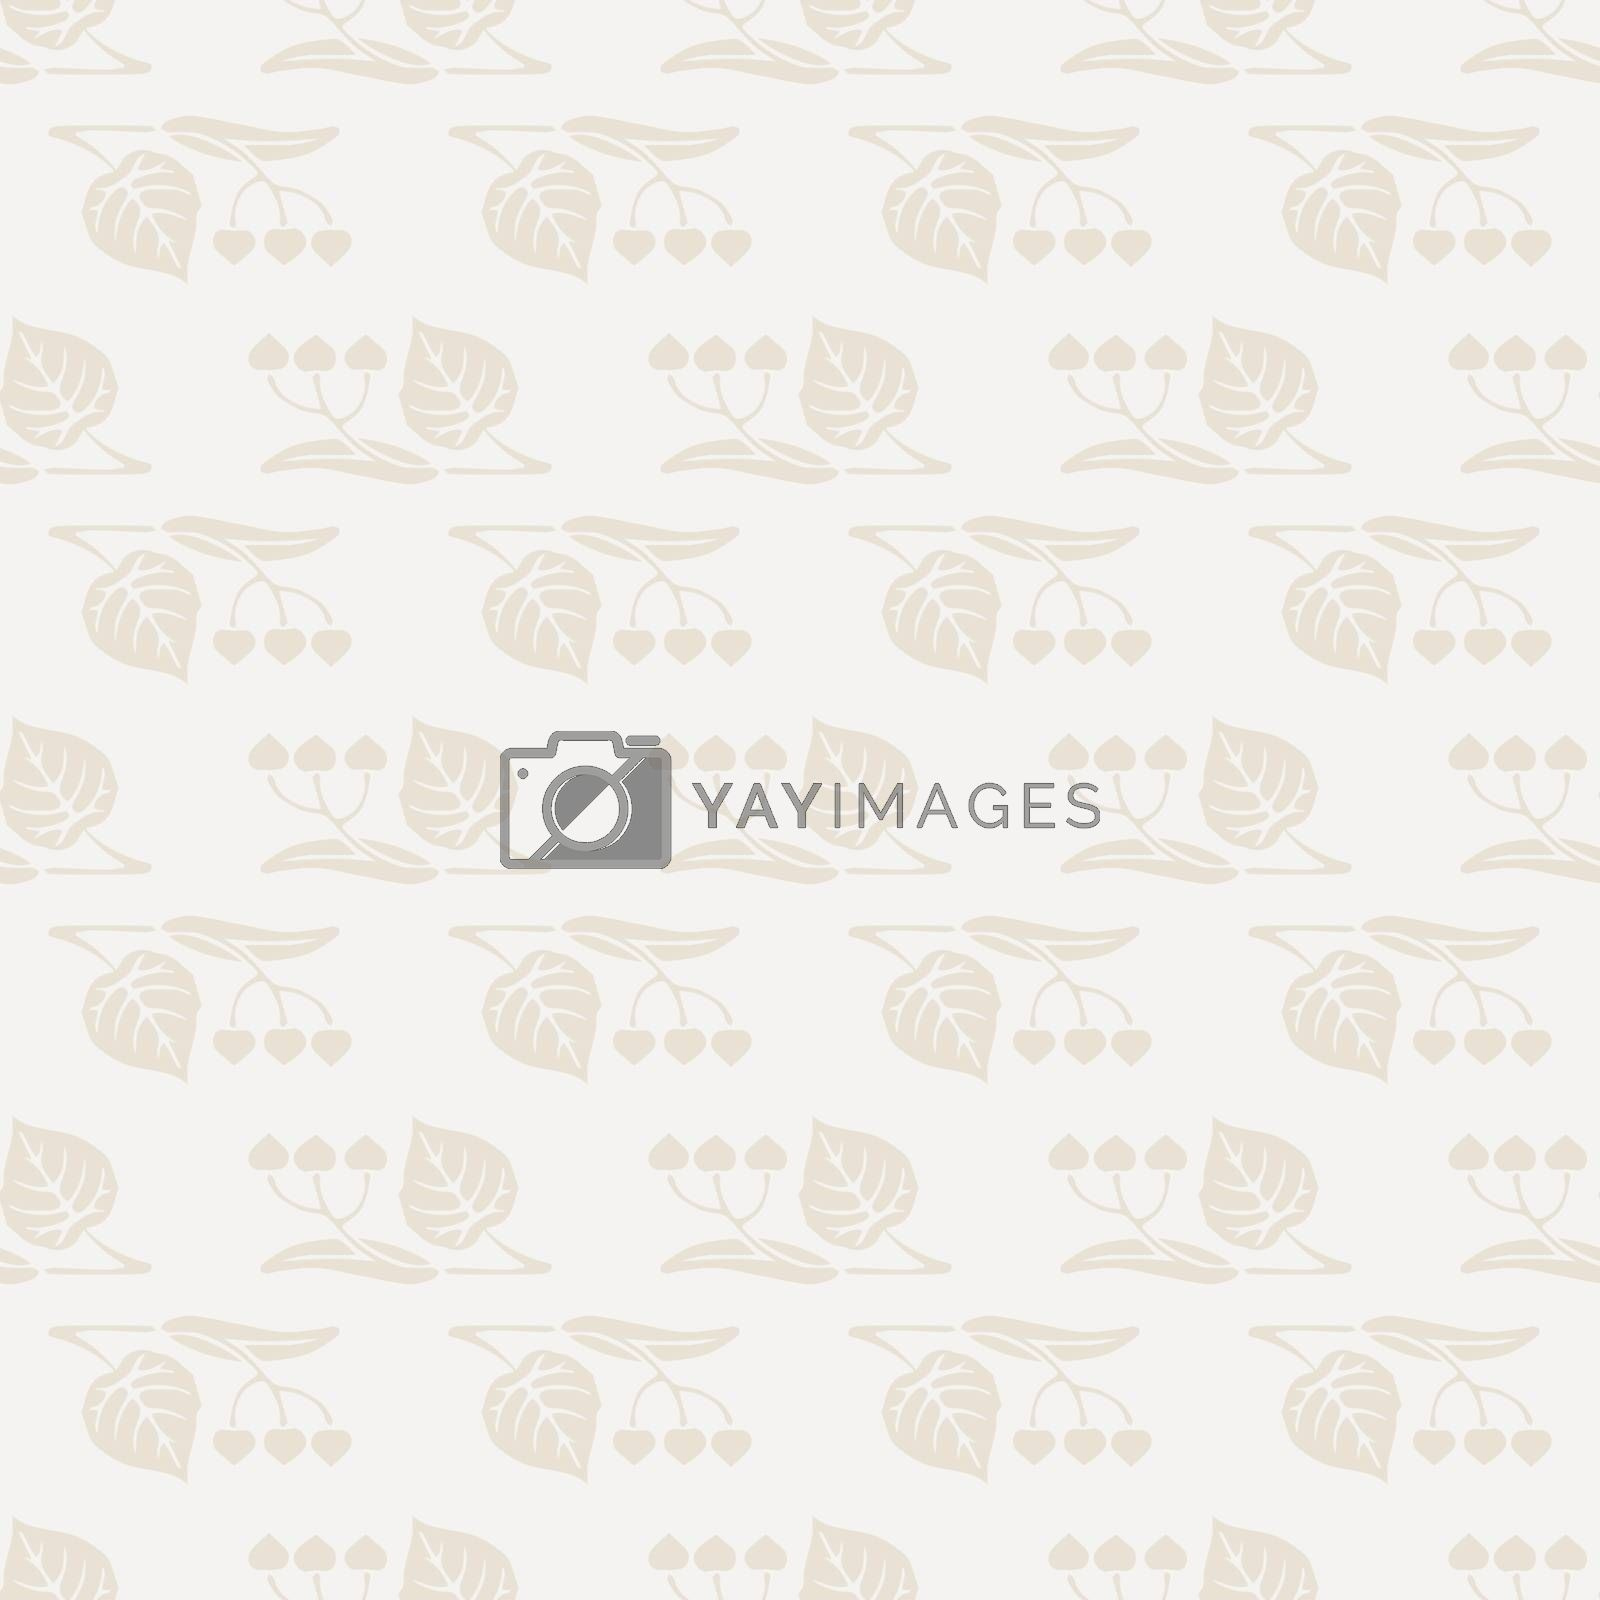 Cute retro seamless pattern with flowers and leaves by Musjaka0